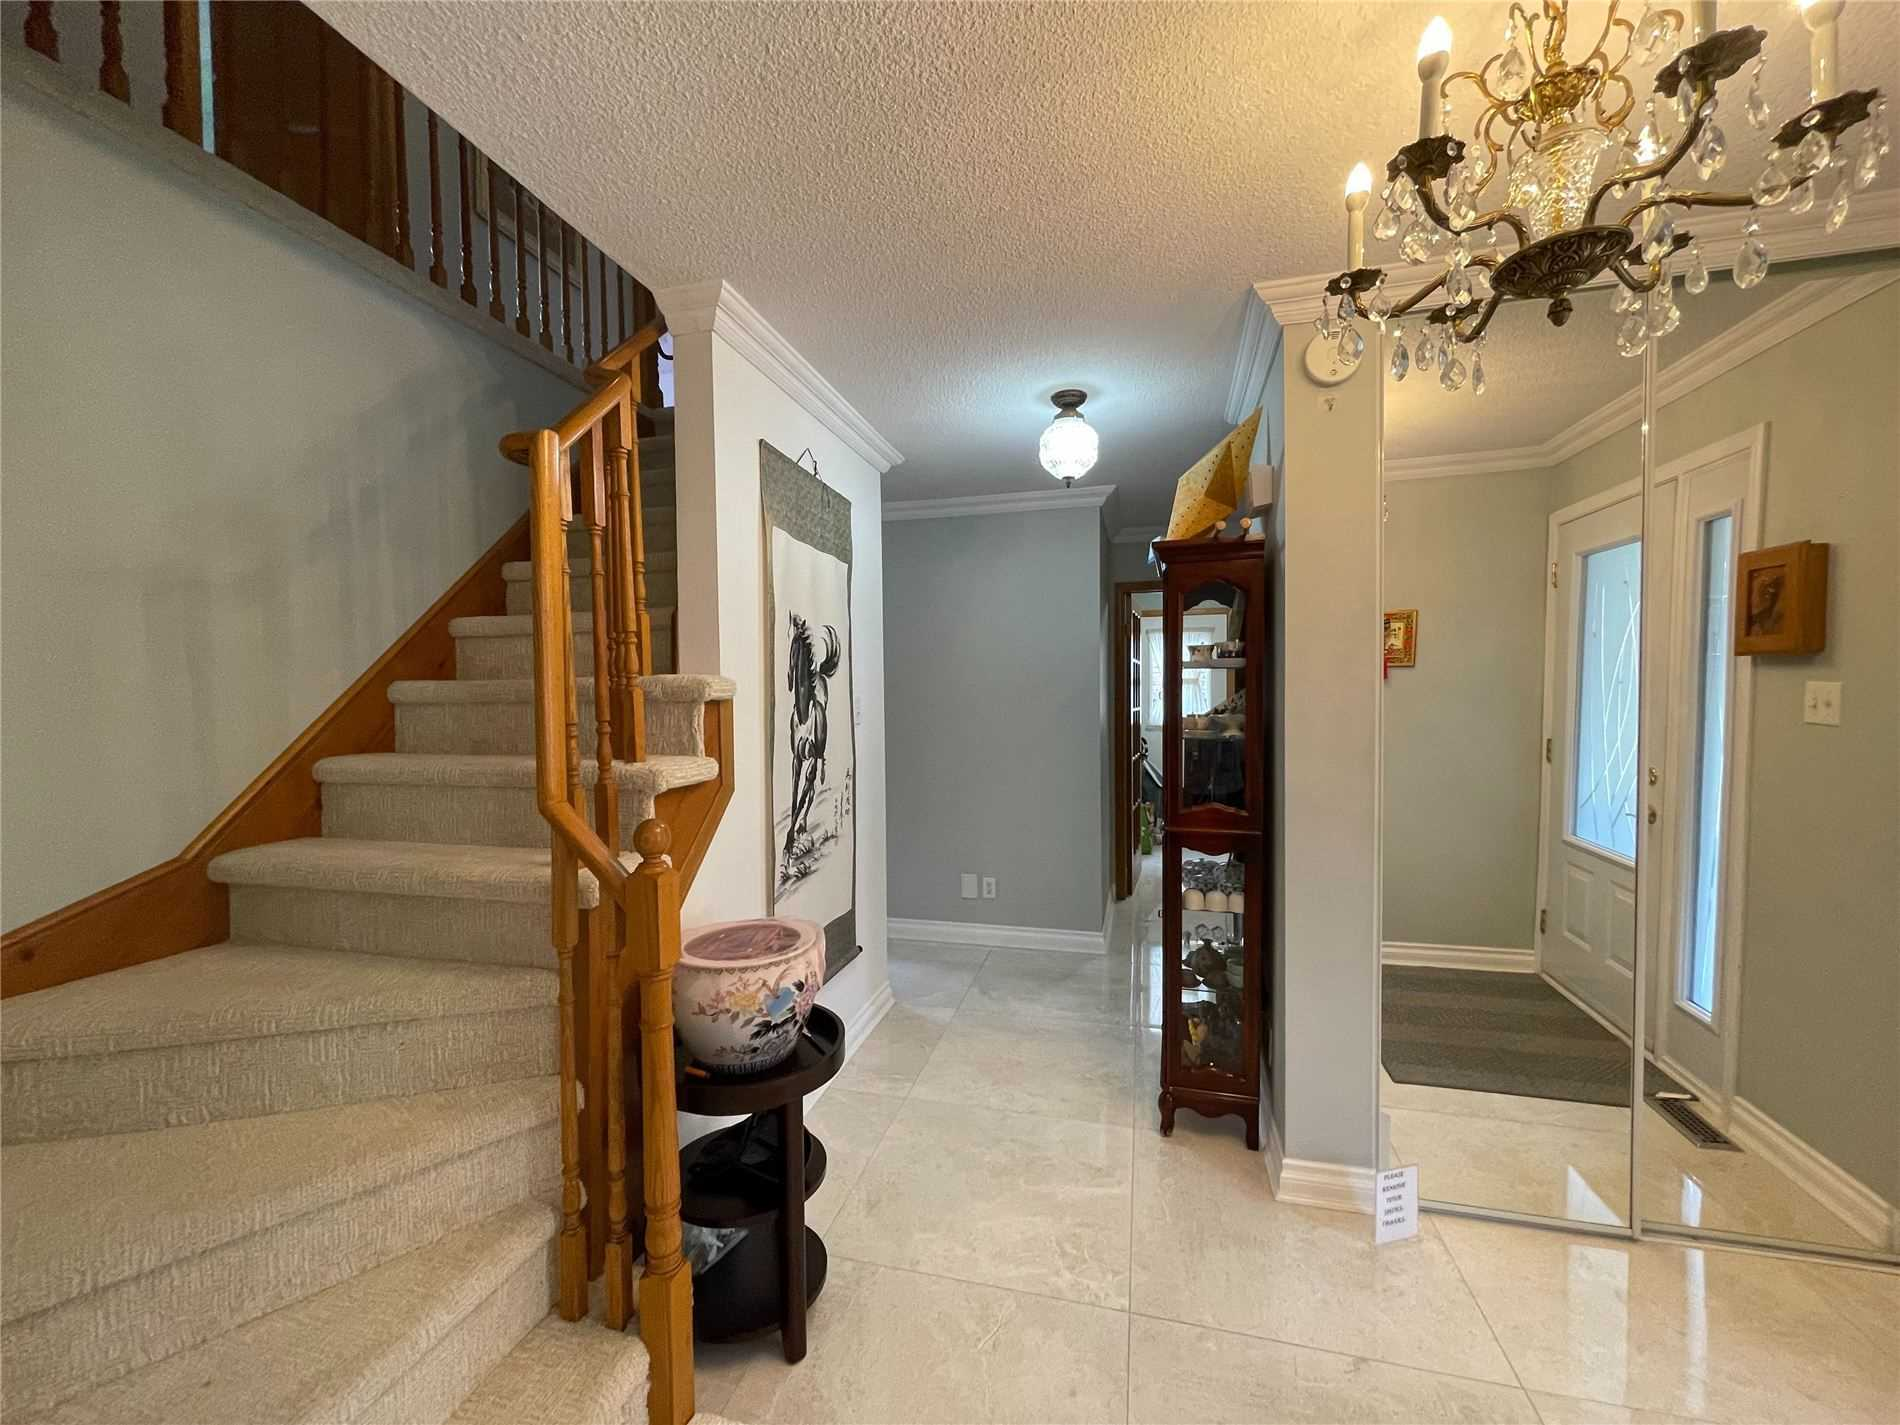 Detached house For Sale In Aurora - 27 Avondale Cres, Aurora, Ontario, Canada L4G3P7 , 4 Bedrooms Bedrooms, ,4 BathroomsBathrooms,Detached,For Sale,Avondale